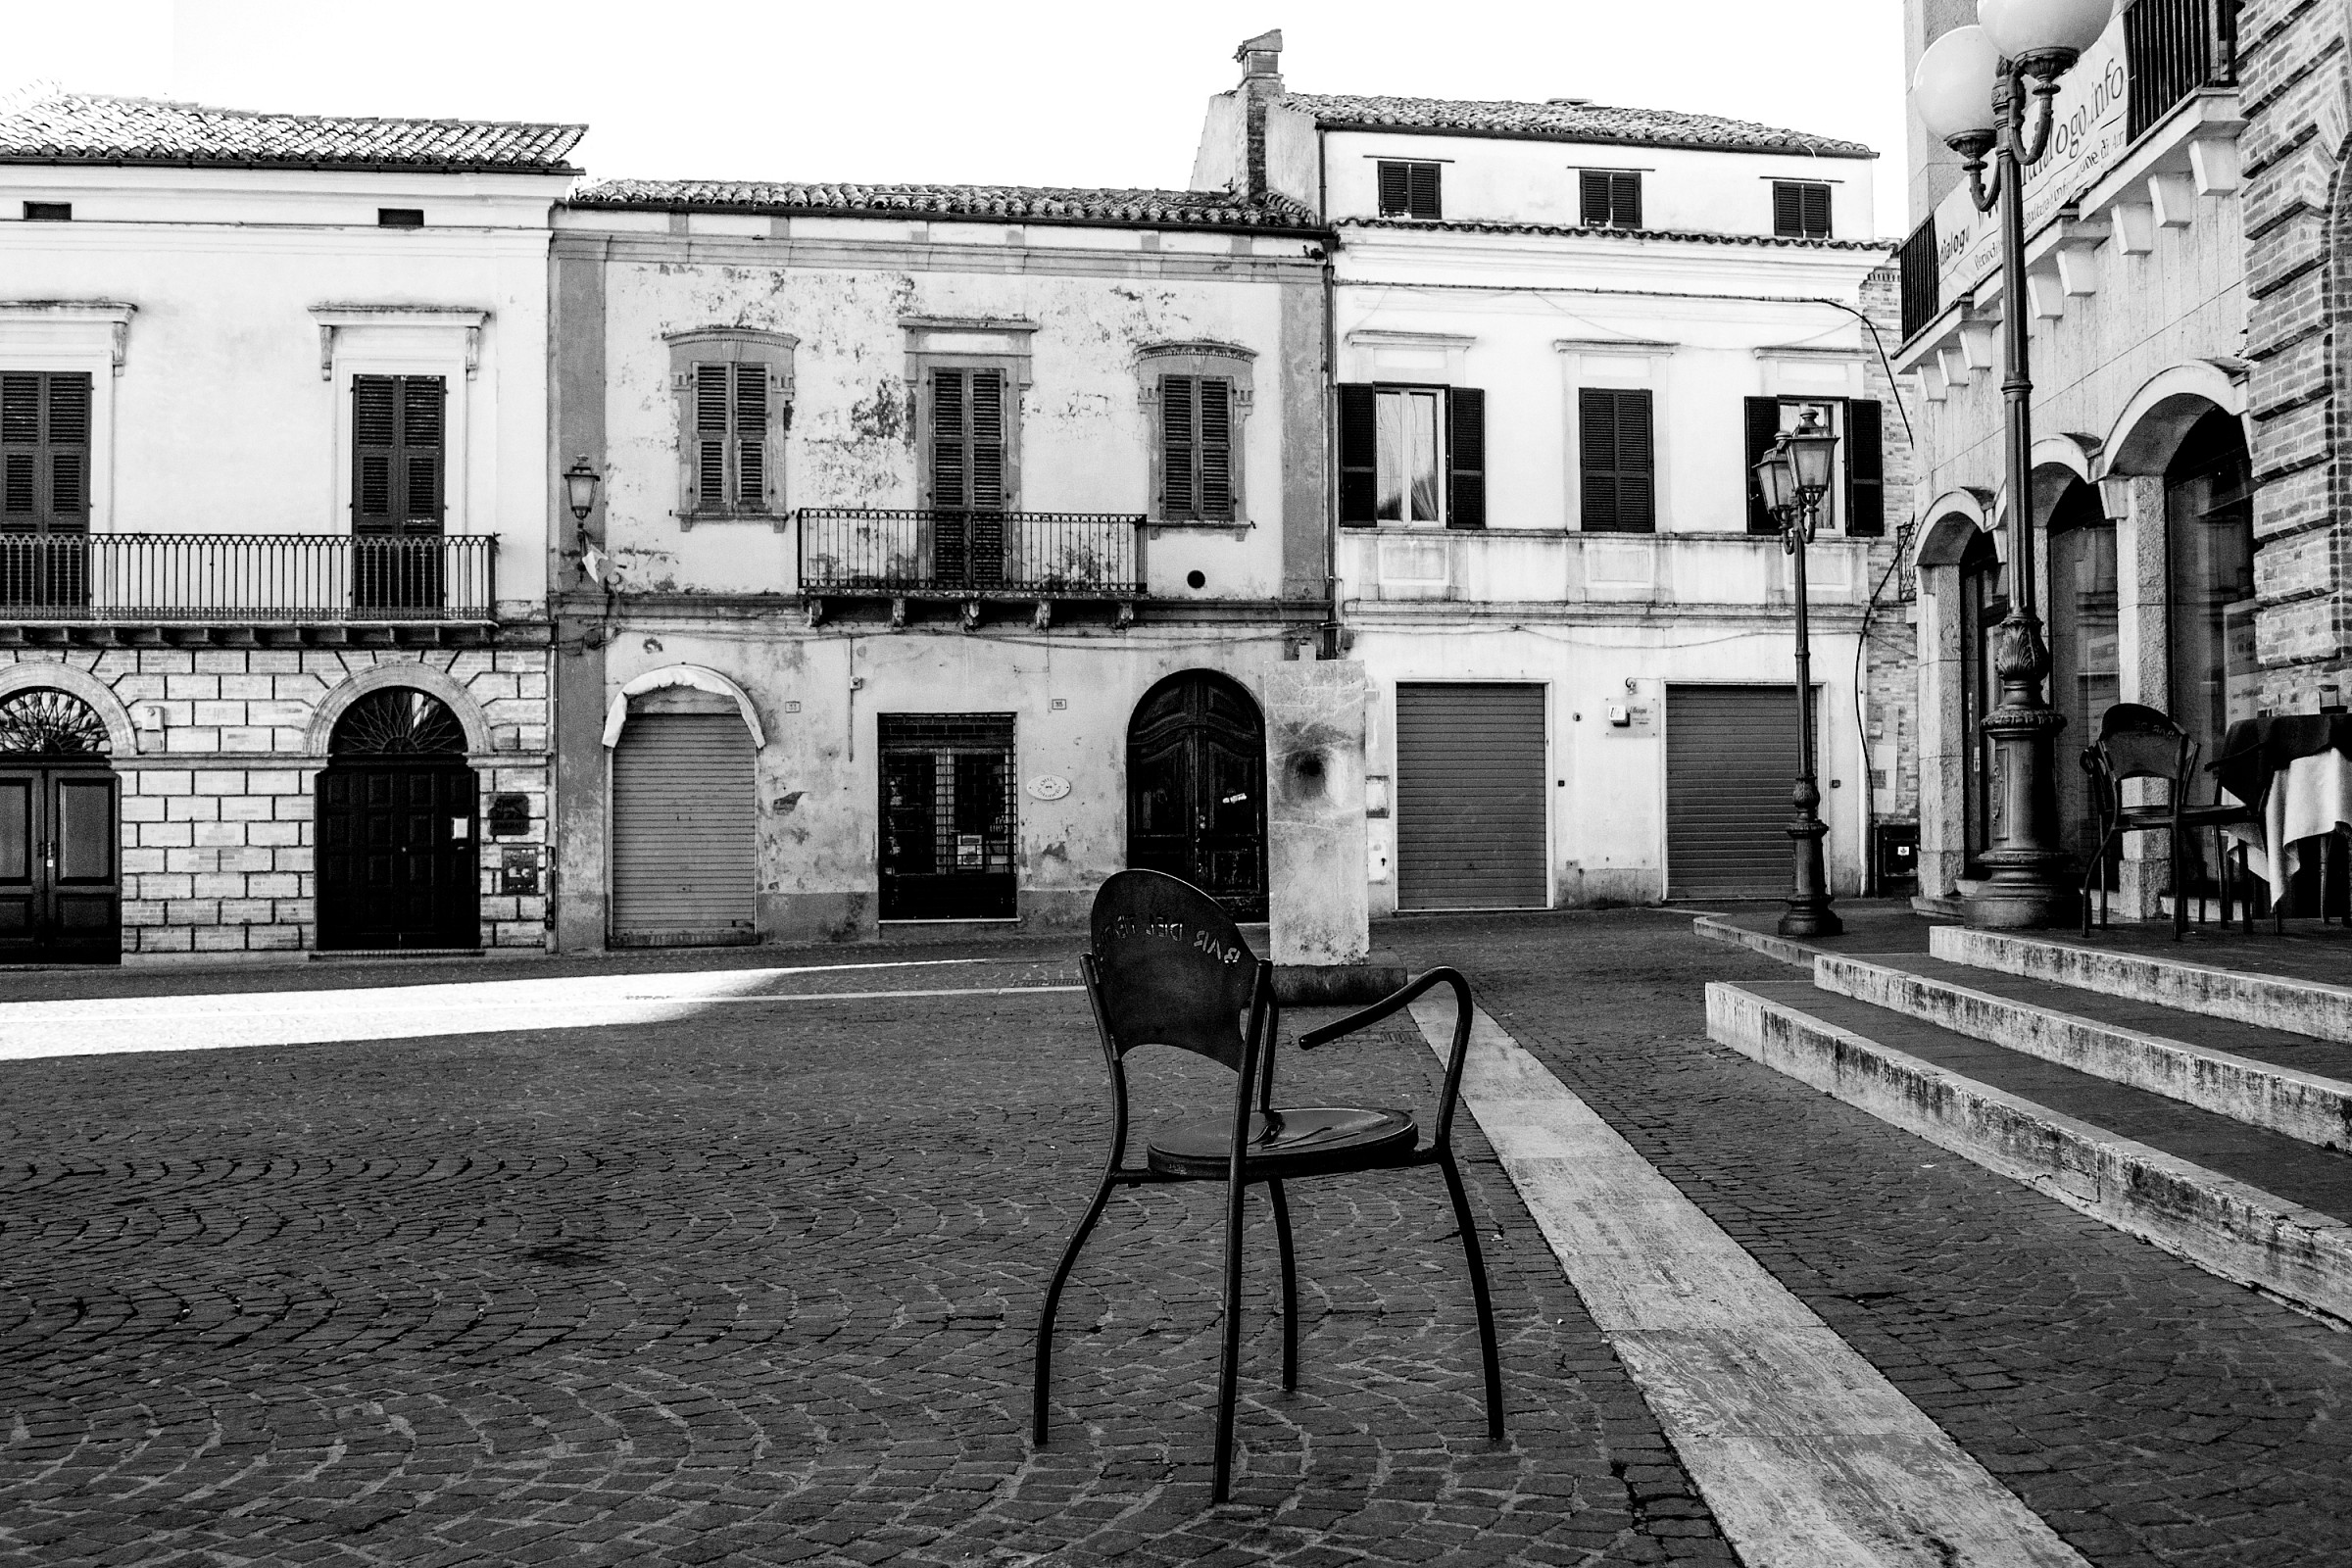 The chair of solitude...